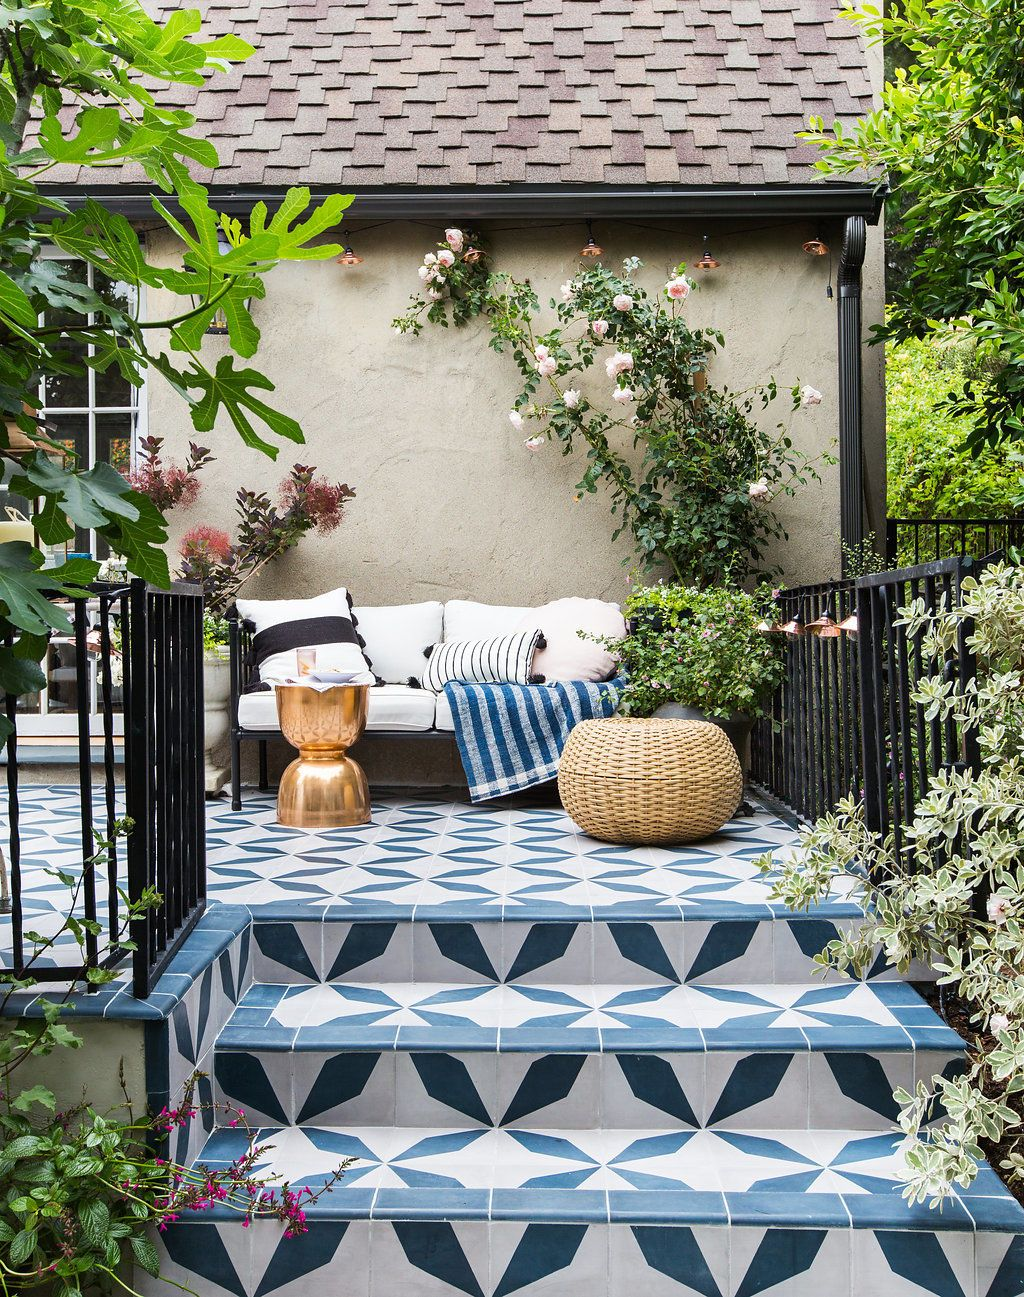 EXCLUSIVE: Emily Henderson's Backyard Makeover Is a Dream